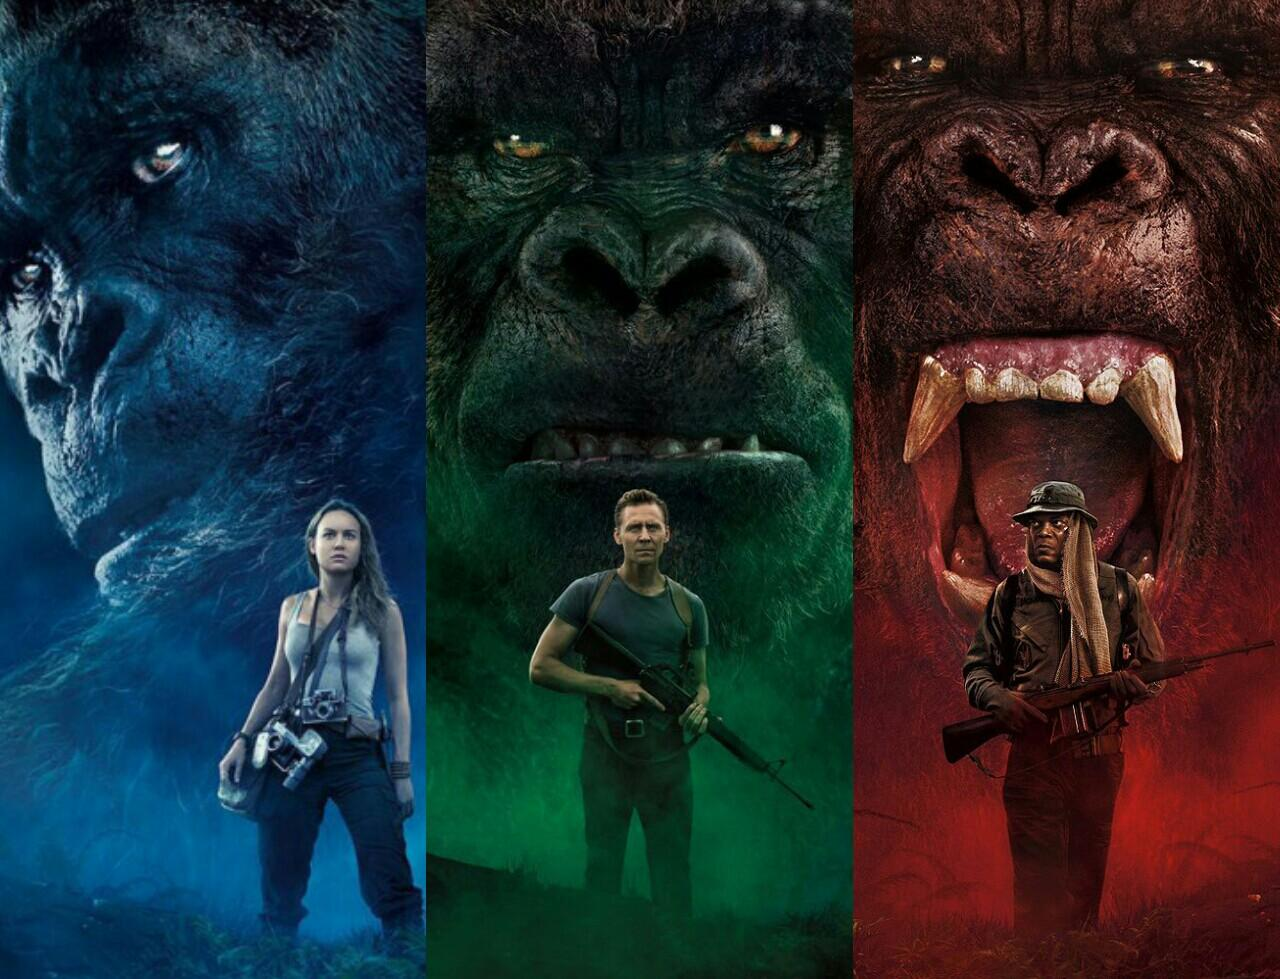 From Left to Right: Mason Weaver (Brie Larson), James Conrad (Tom Hiddleston) and Preston Packard (Samuel L. Jackson) in Kong: Skull Island.